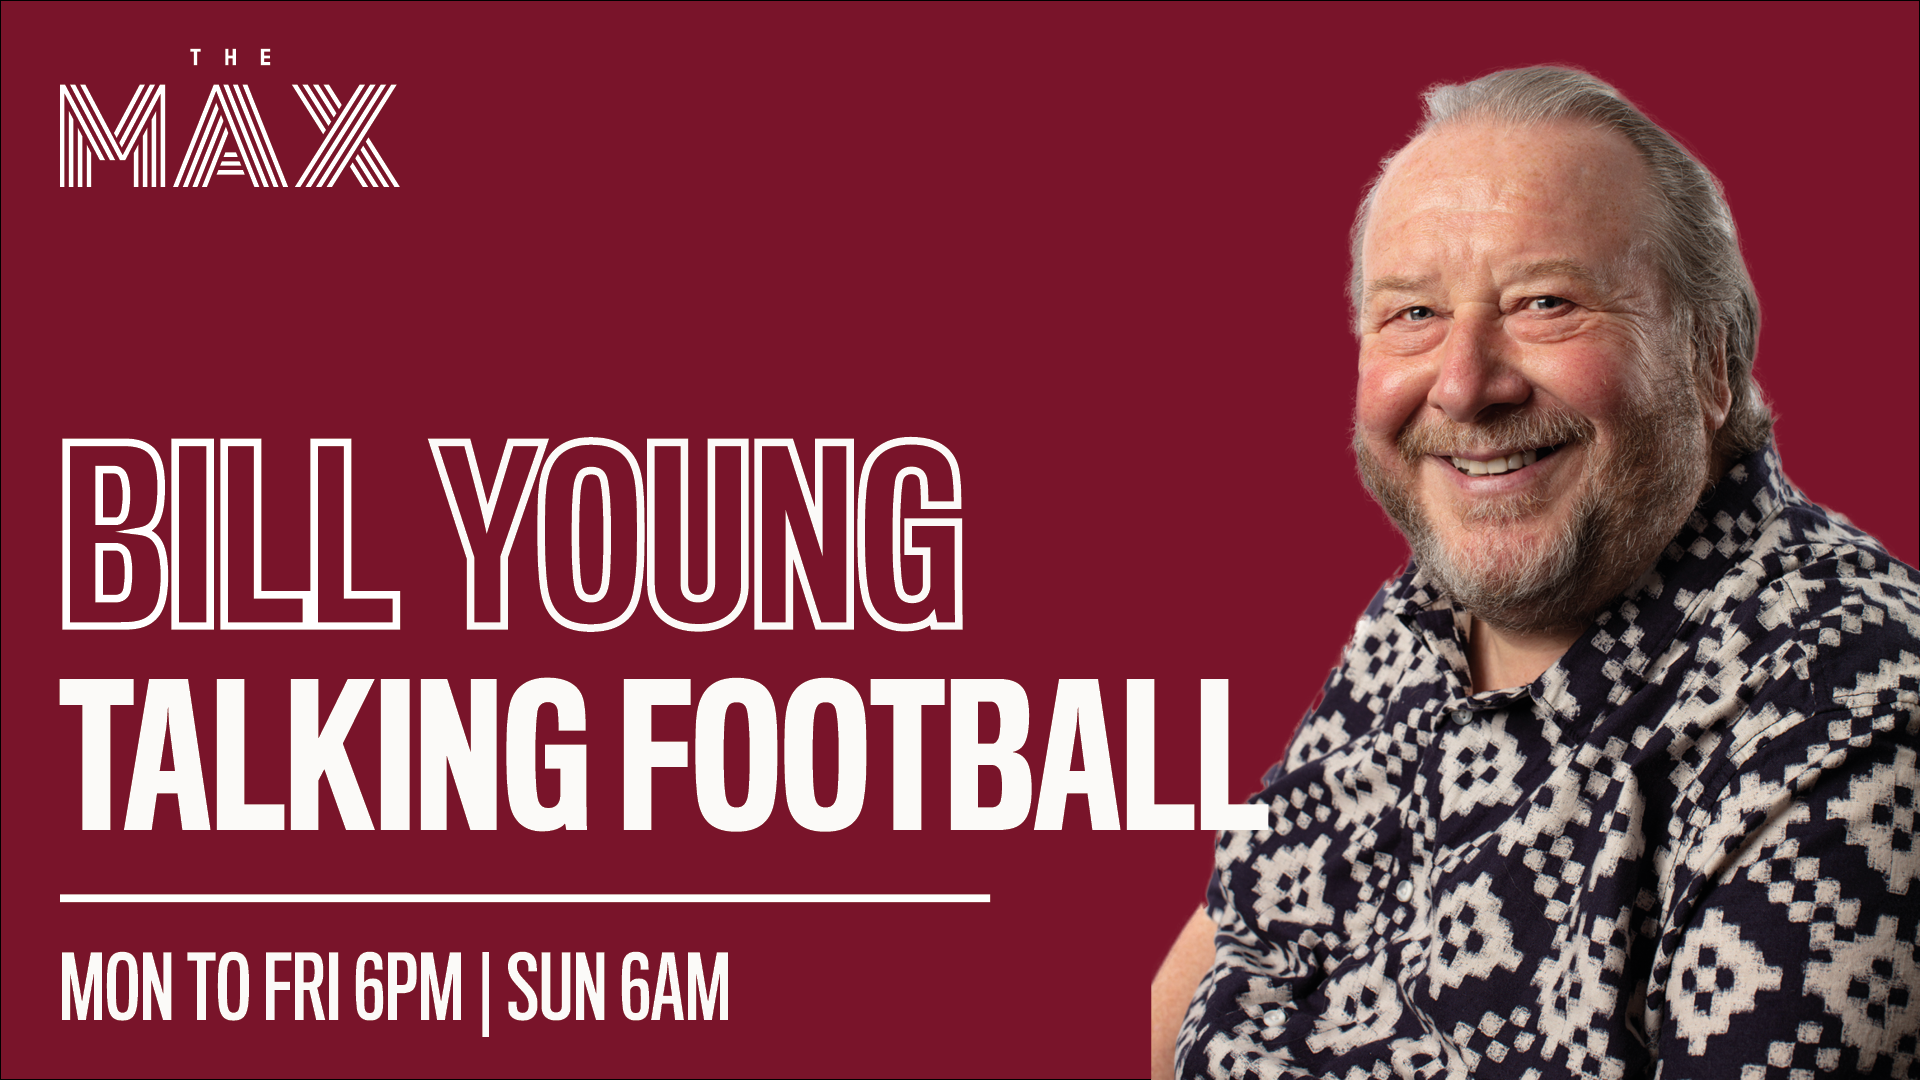 Talking Football with Bill Young - Tuesday 2nd February